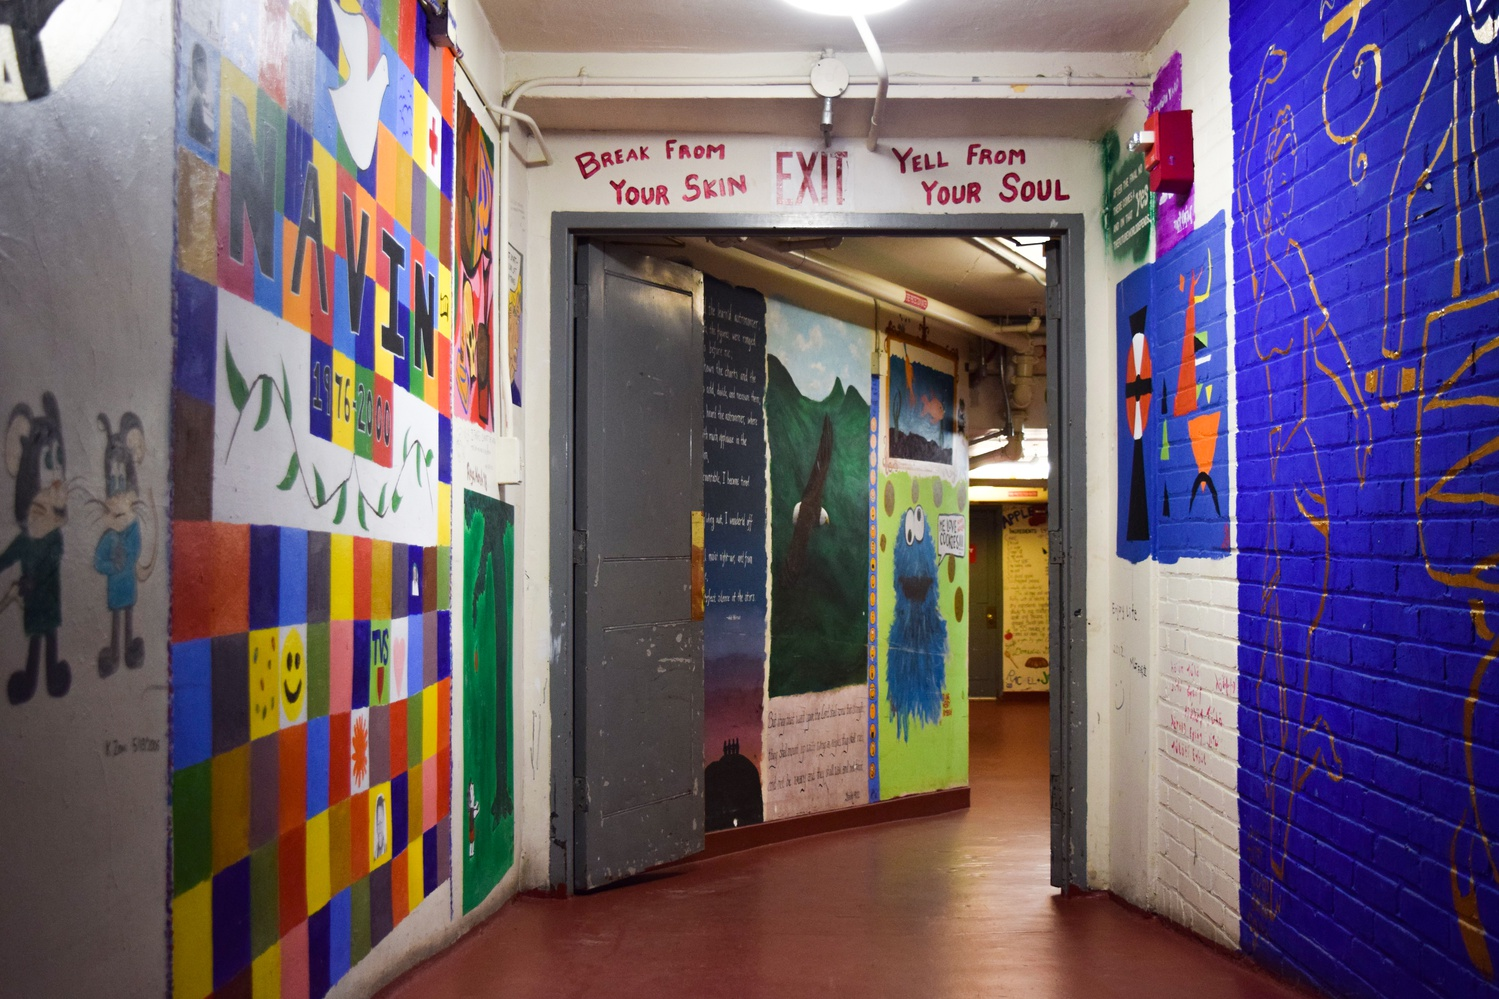 Basement murals from Adams House, a community traditionally supportive of both the arts and BGLTQ communities at Harvard.